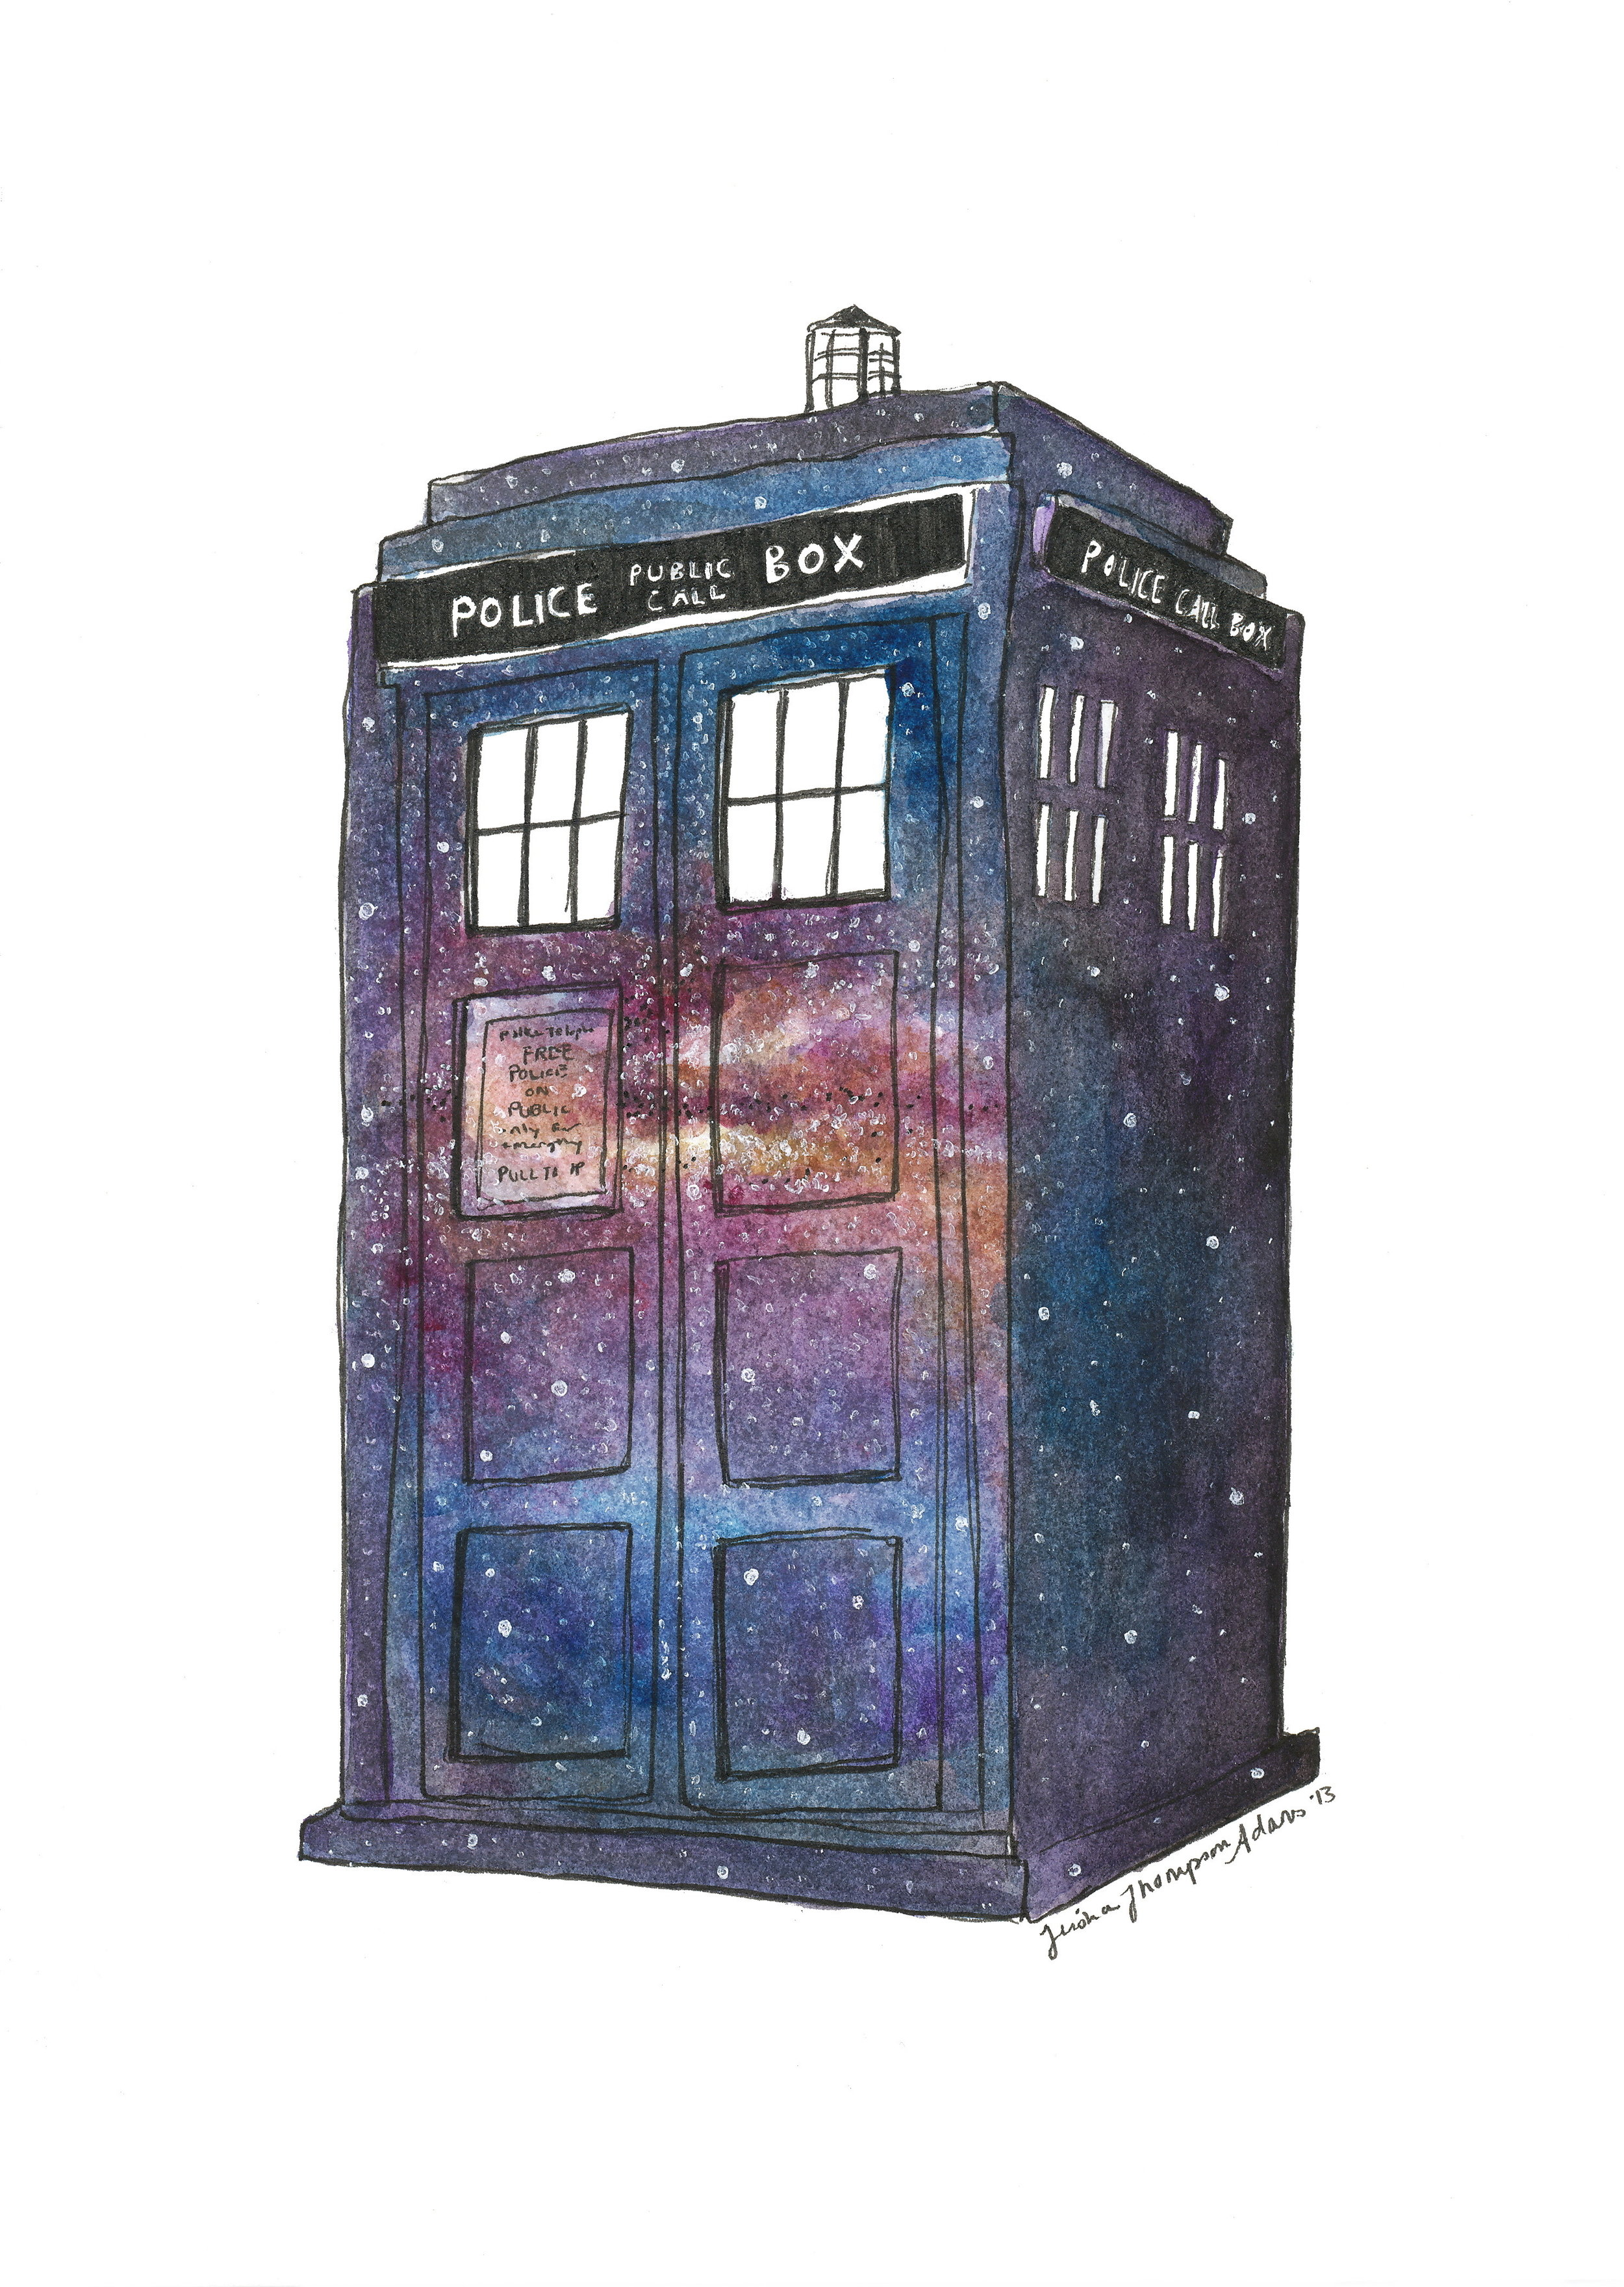 Galaxy Tardis (ITEM NO: 001)  Print Size:8x10 inches  $12.50 Wholesale at 50% off  $25 RRP